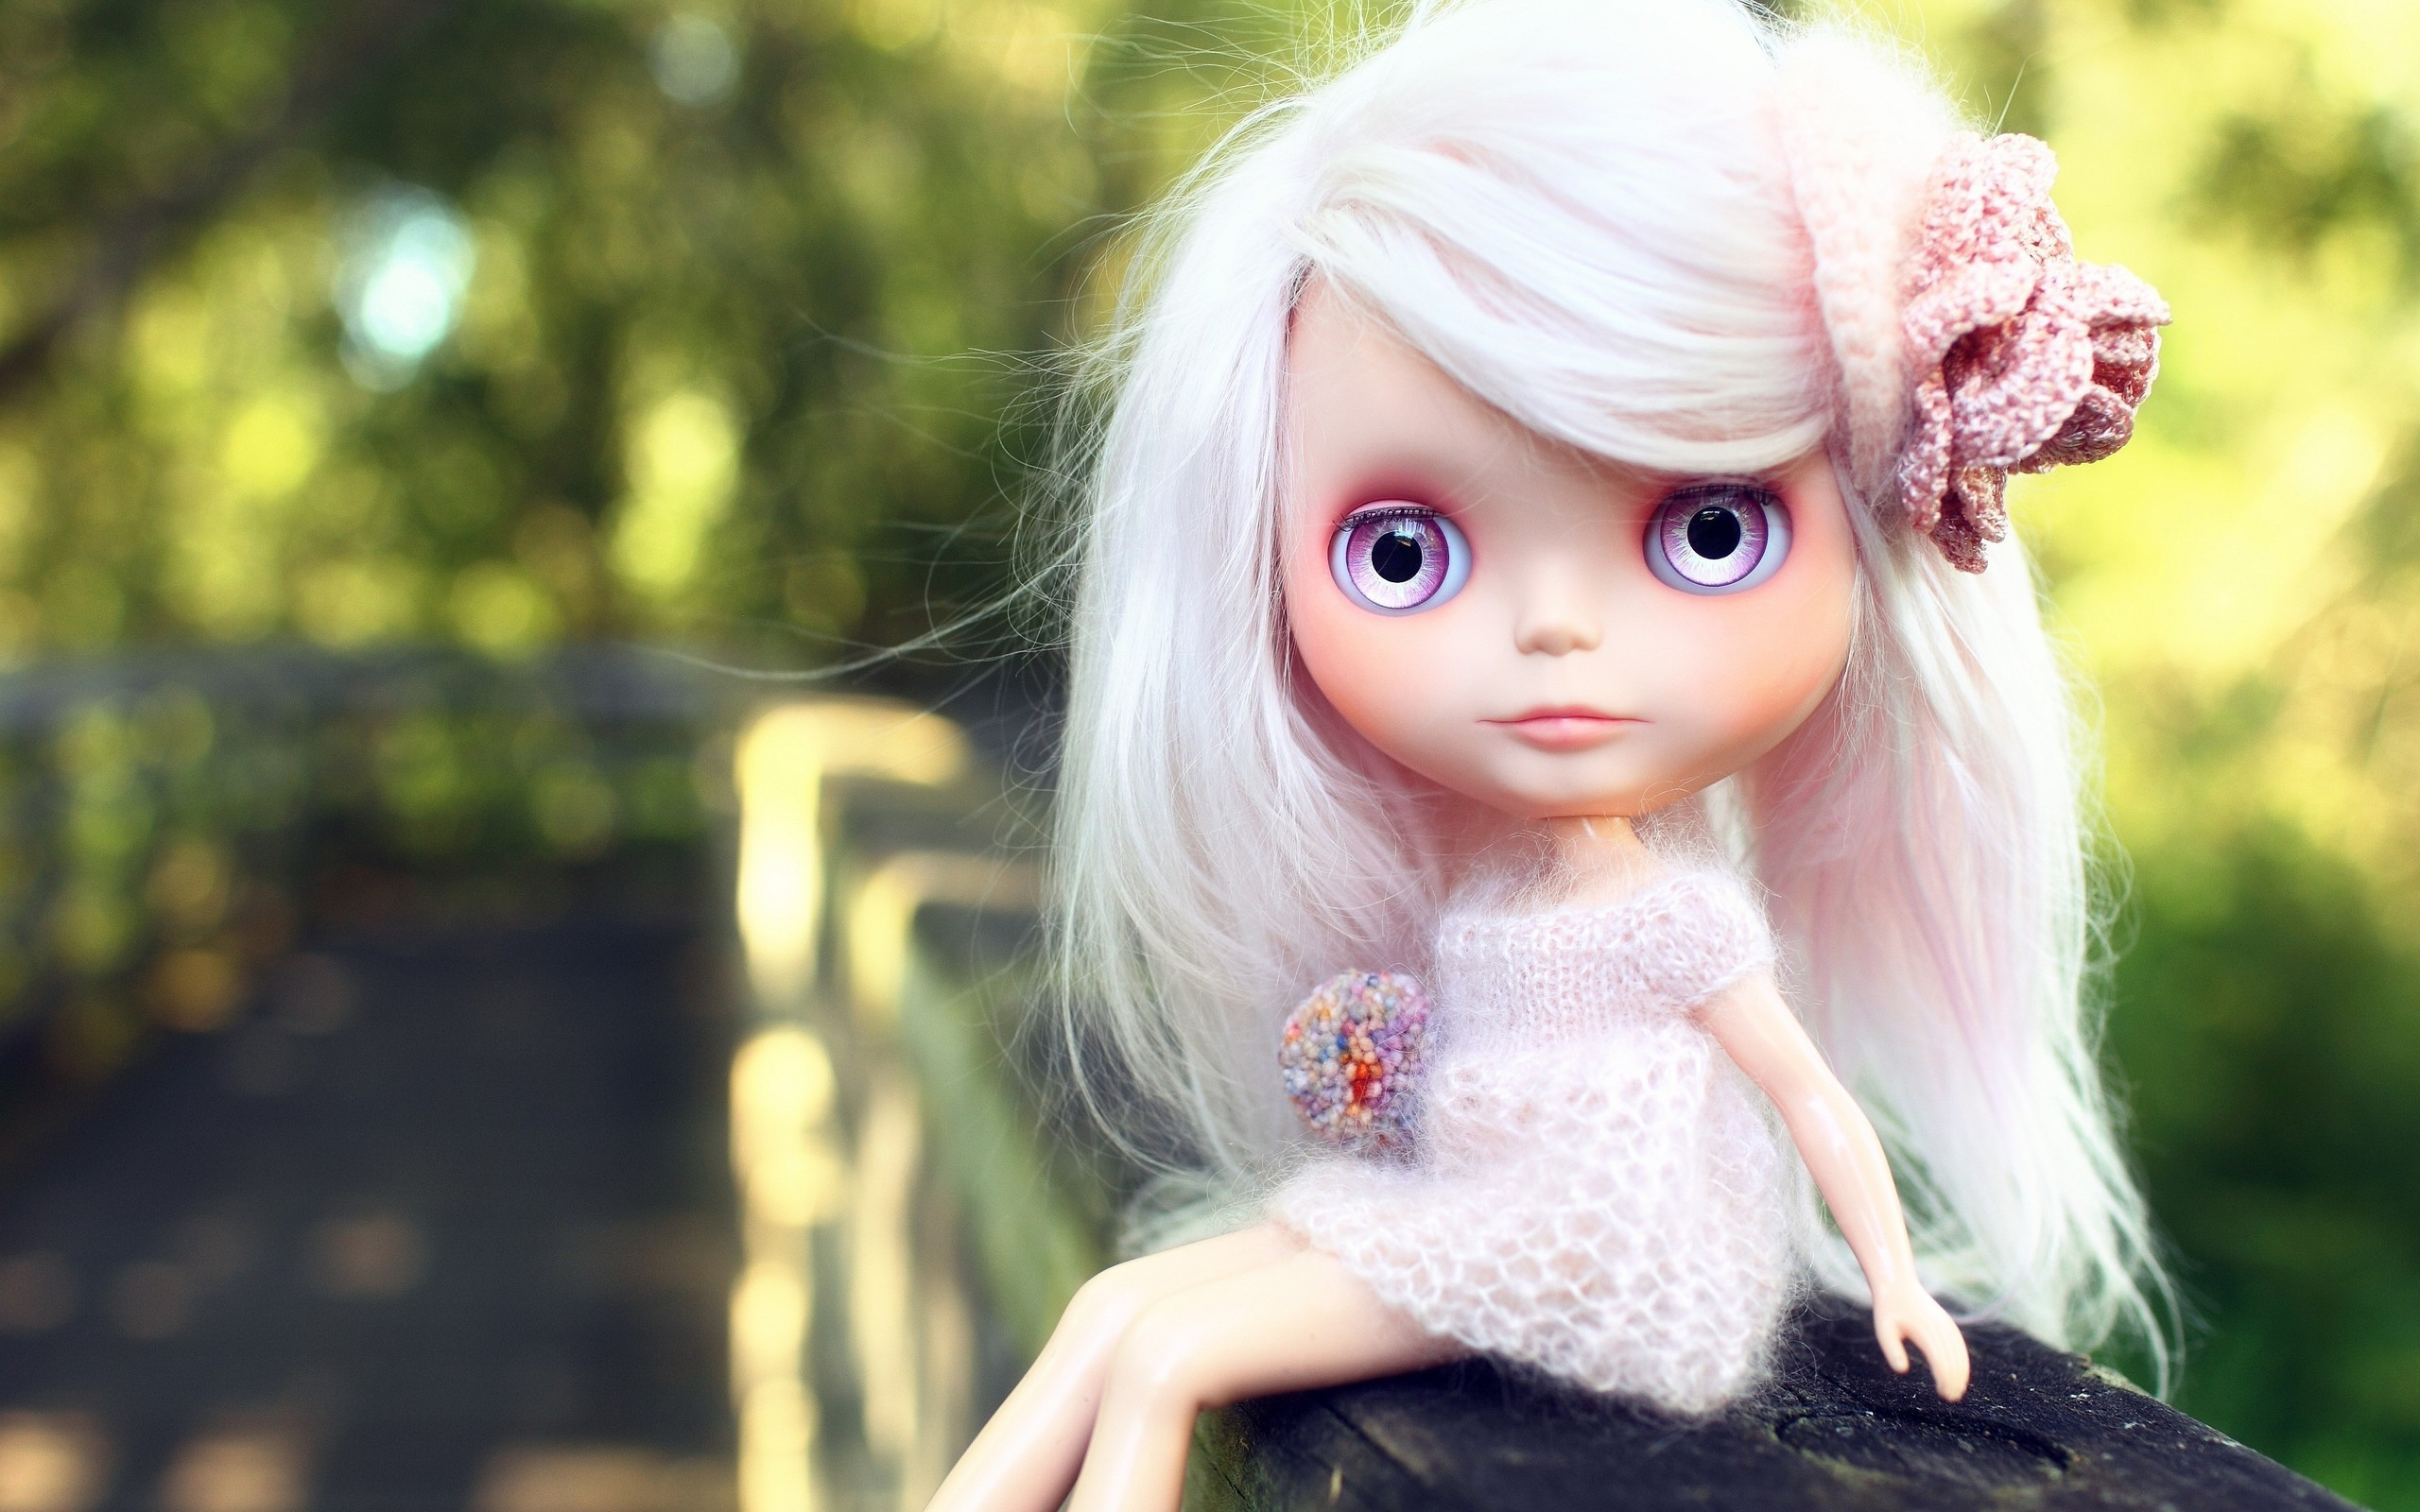 Barbie Toy Doll Wallpaper 2560x1600 33188